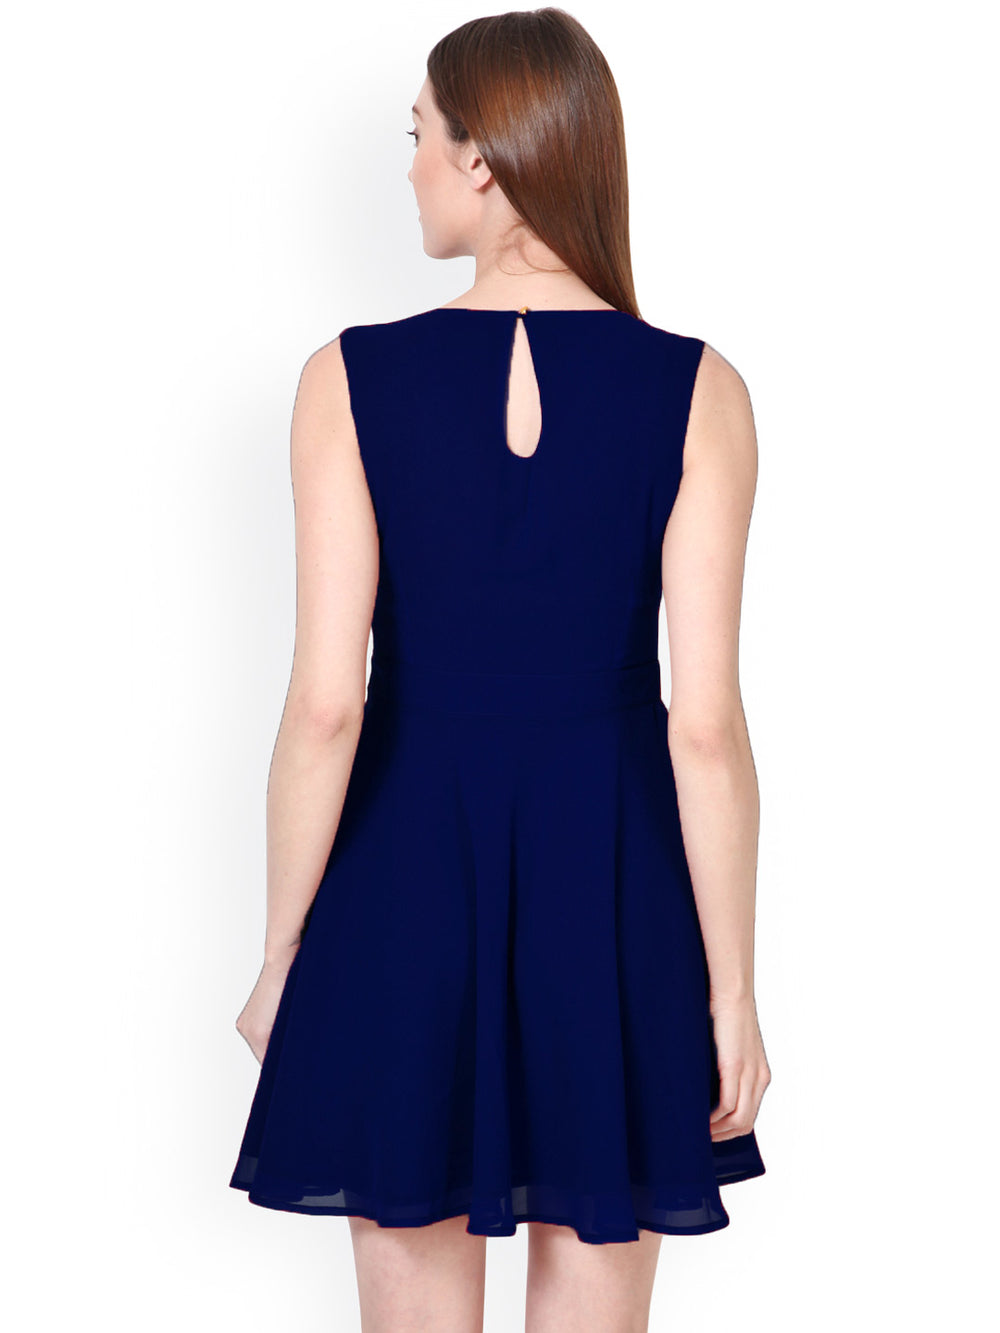 Besiva Navy Skater Dress